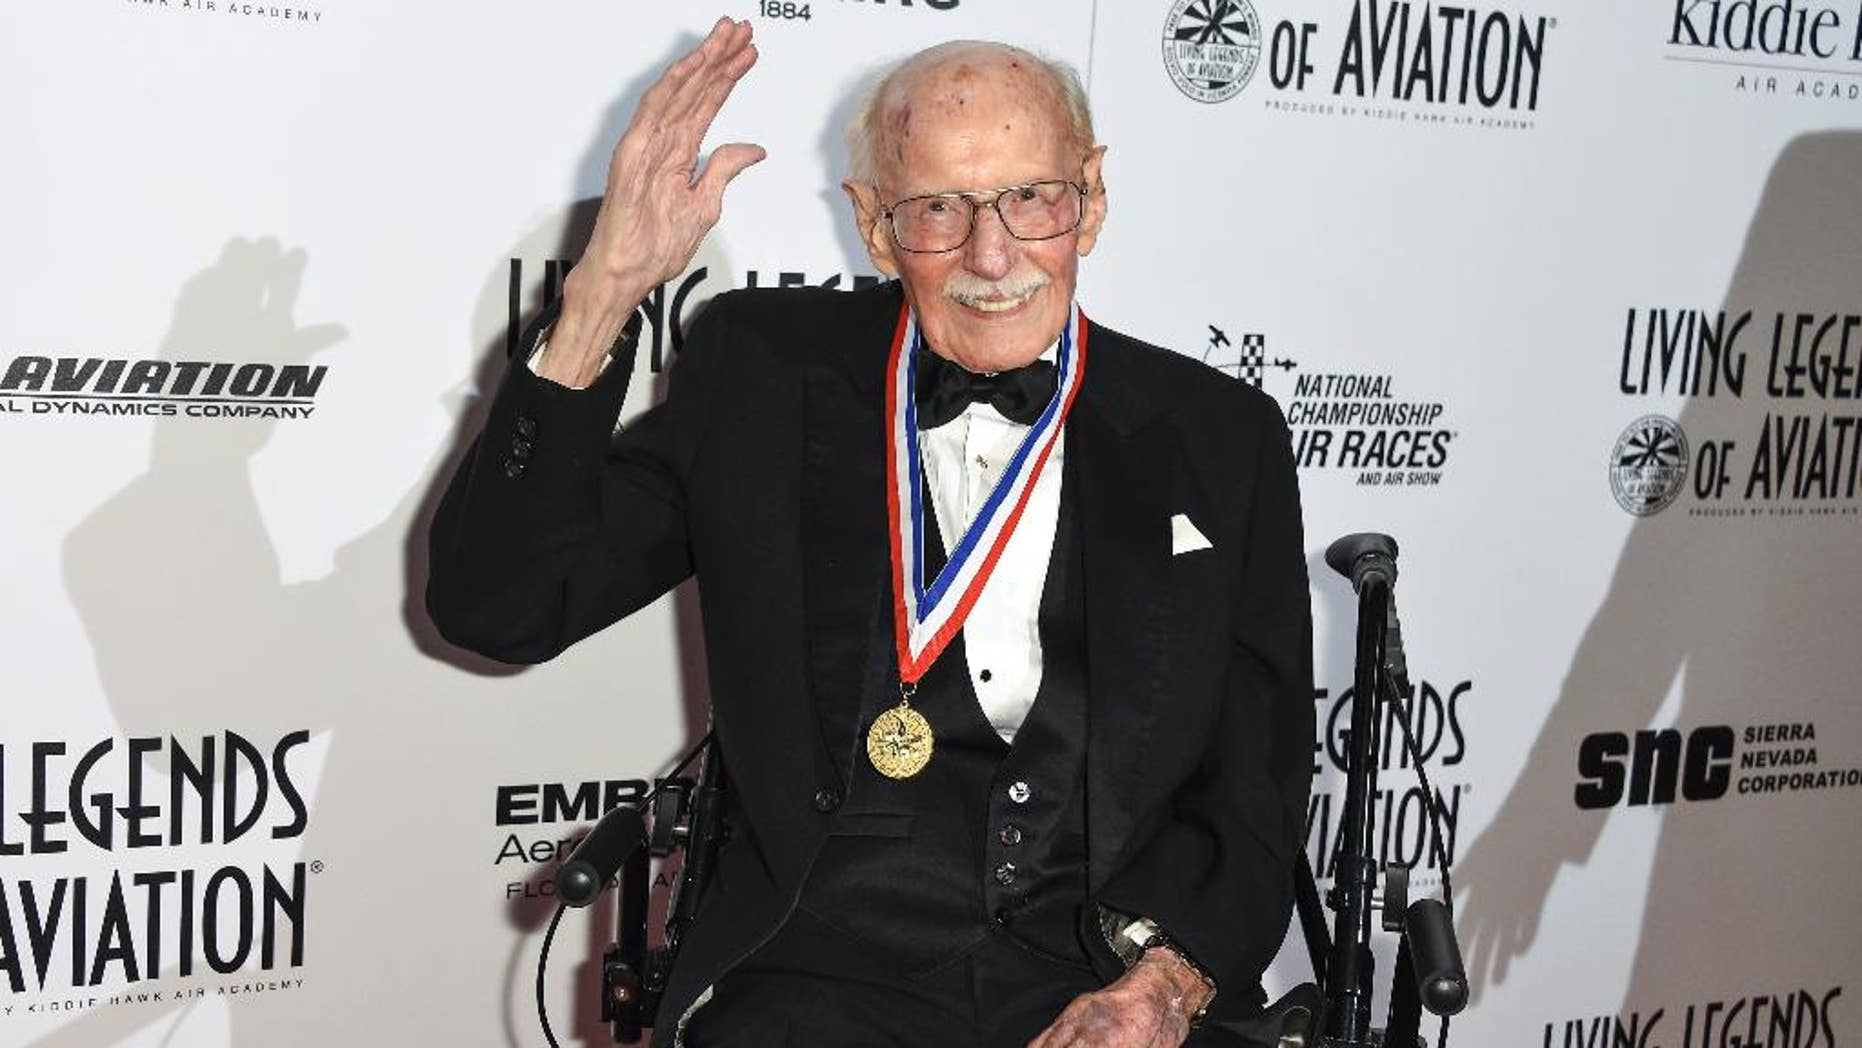 """FILE - In this Jan. 16, 2015, file photo, Bob Hoover attends the 12th annual Living Legends of Aviation Awards at The Beverly Hilton Hotel in Beverly Hills, Calif. Robert A. """"Bob"""" Hoover, a World War II fighter pilot who became an aviation legend for his skills in testing aircraft and demonstrating their capabilities in air shows, has died at age 94. Bill Fanning, a close family friend and a fellow pilot, says Hoover died early Tuesday, Oct. 25, 2016, in Southern California. (Photo by Rob Latour/Invision/AP, File)"""